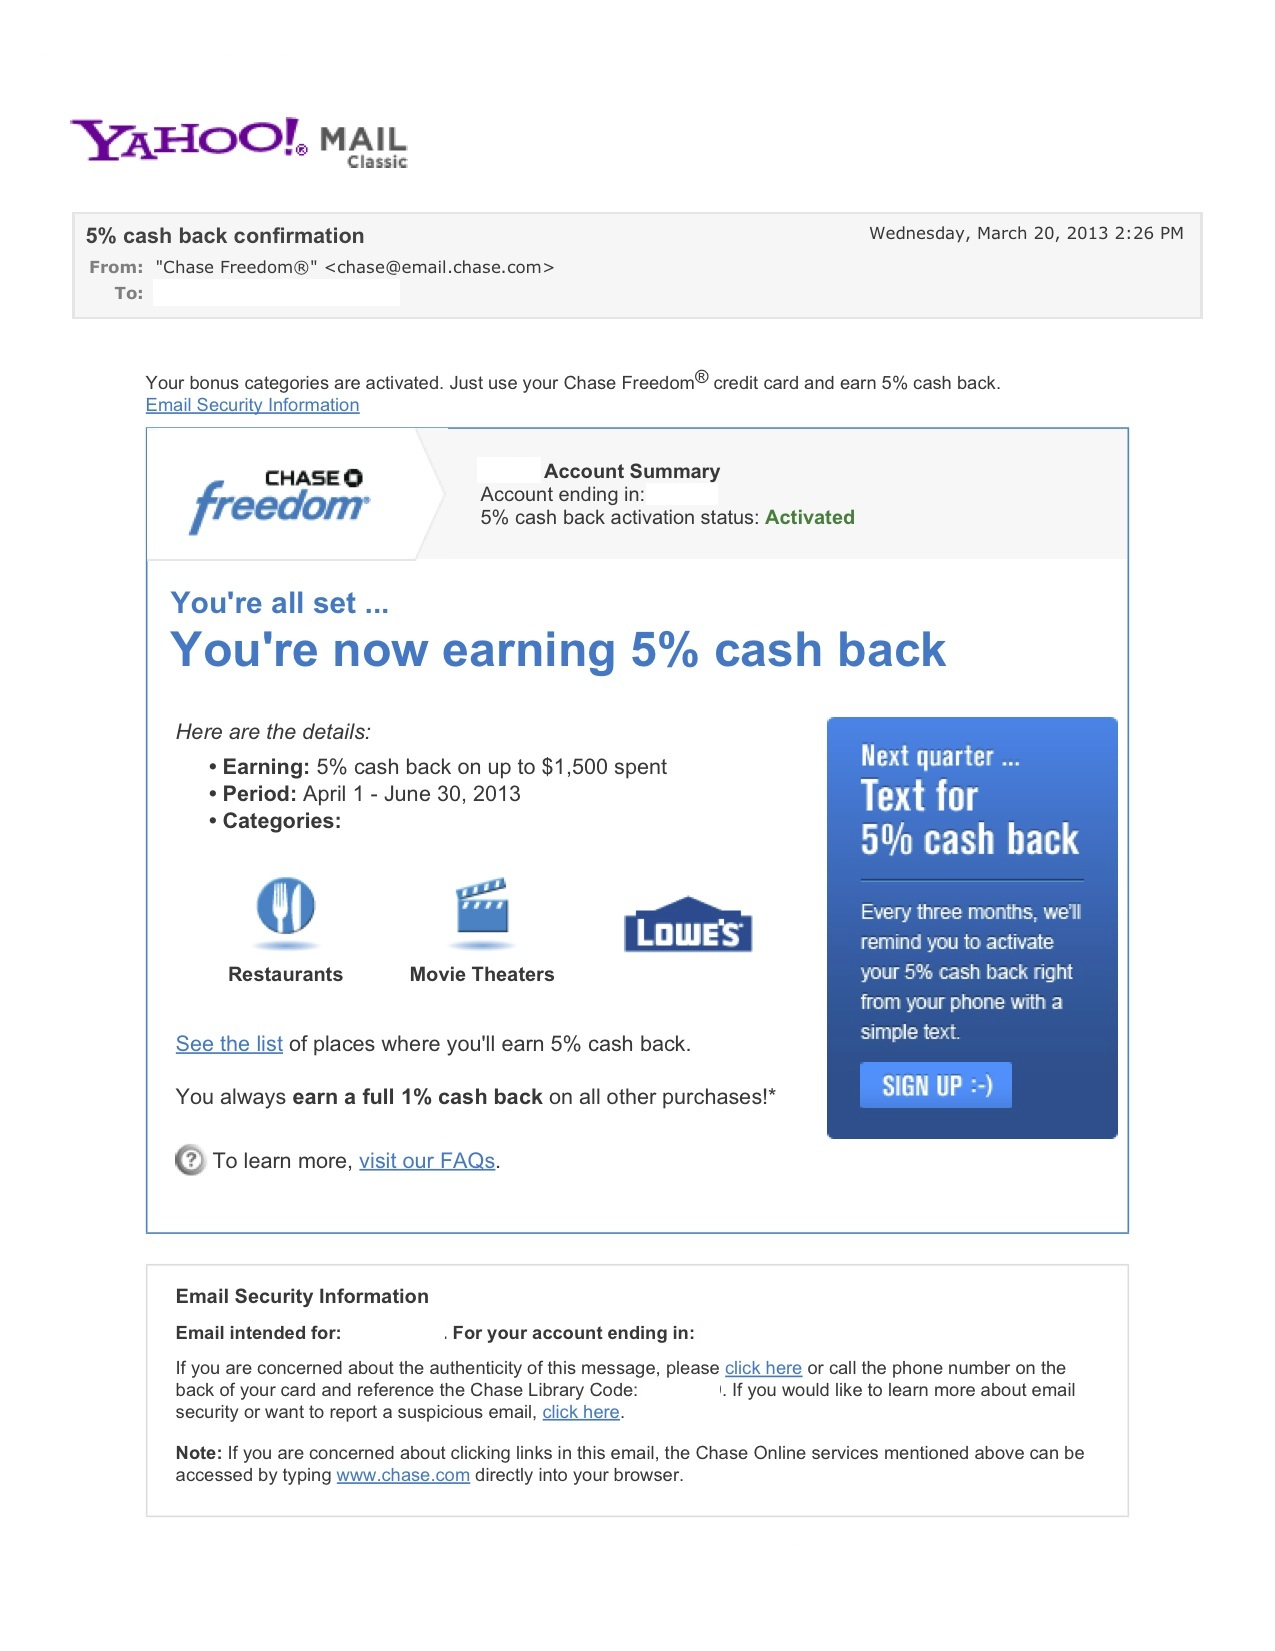 5% cash back confirmation - Yahoo! Mail.jpg